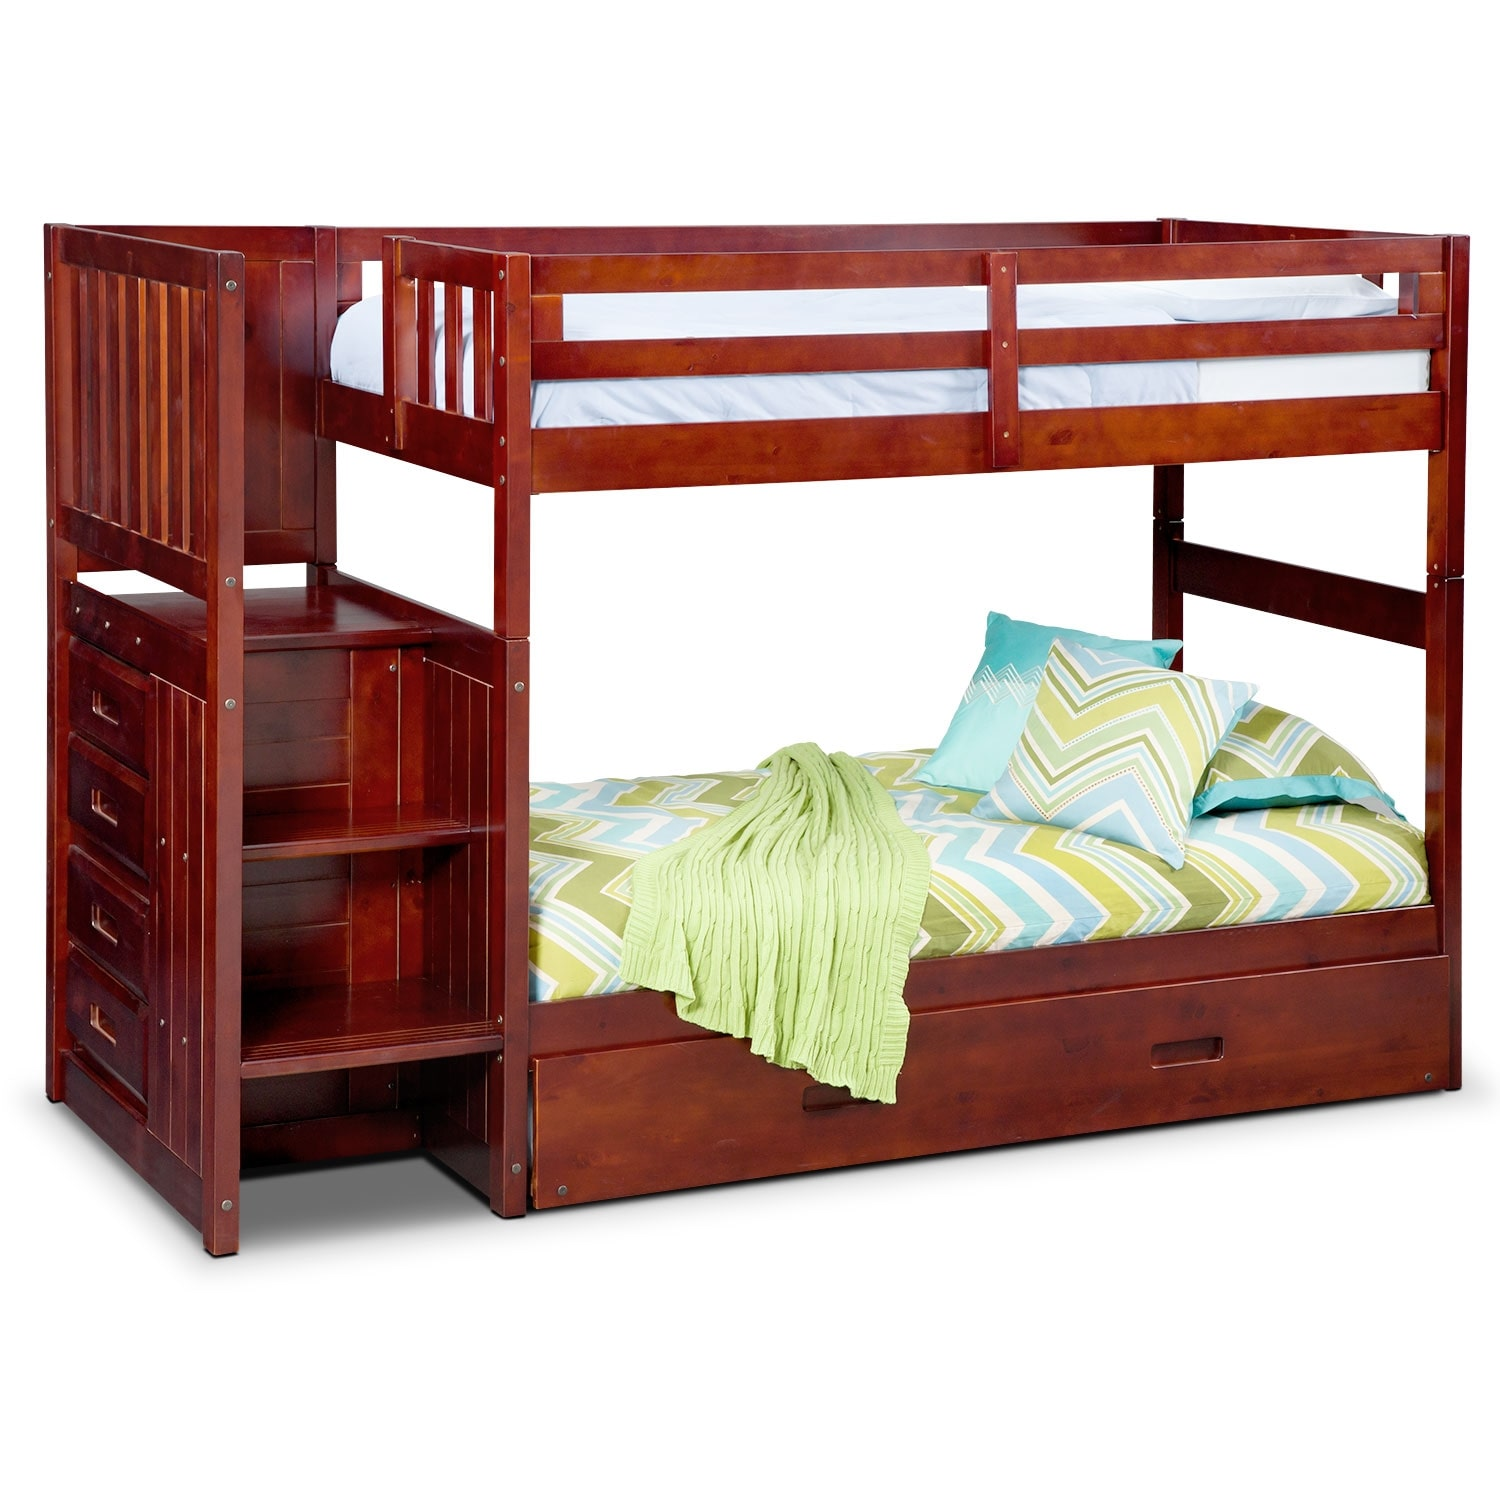 100 3 bed bunk beds for kids 3 bed bunk beds how to build e